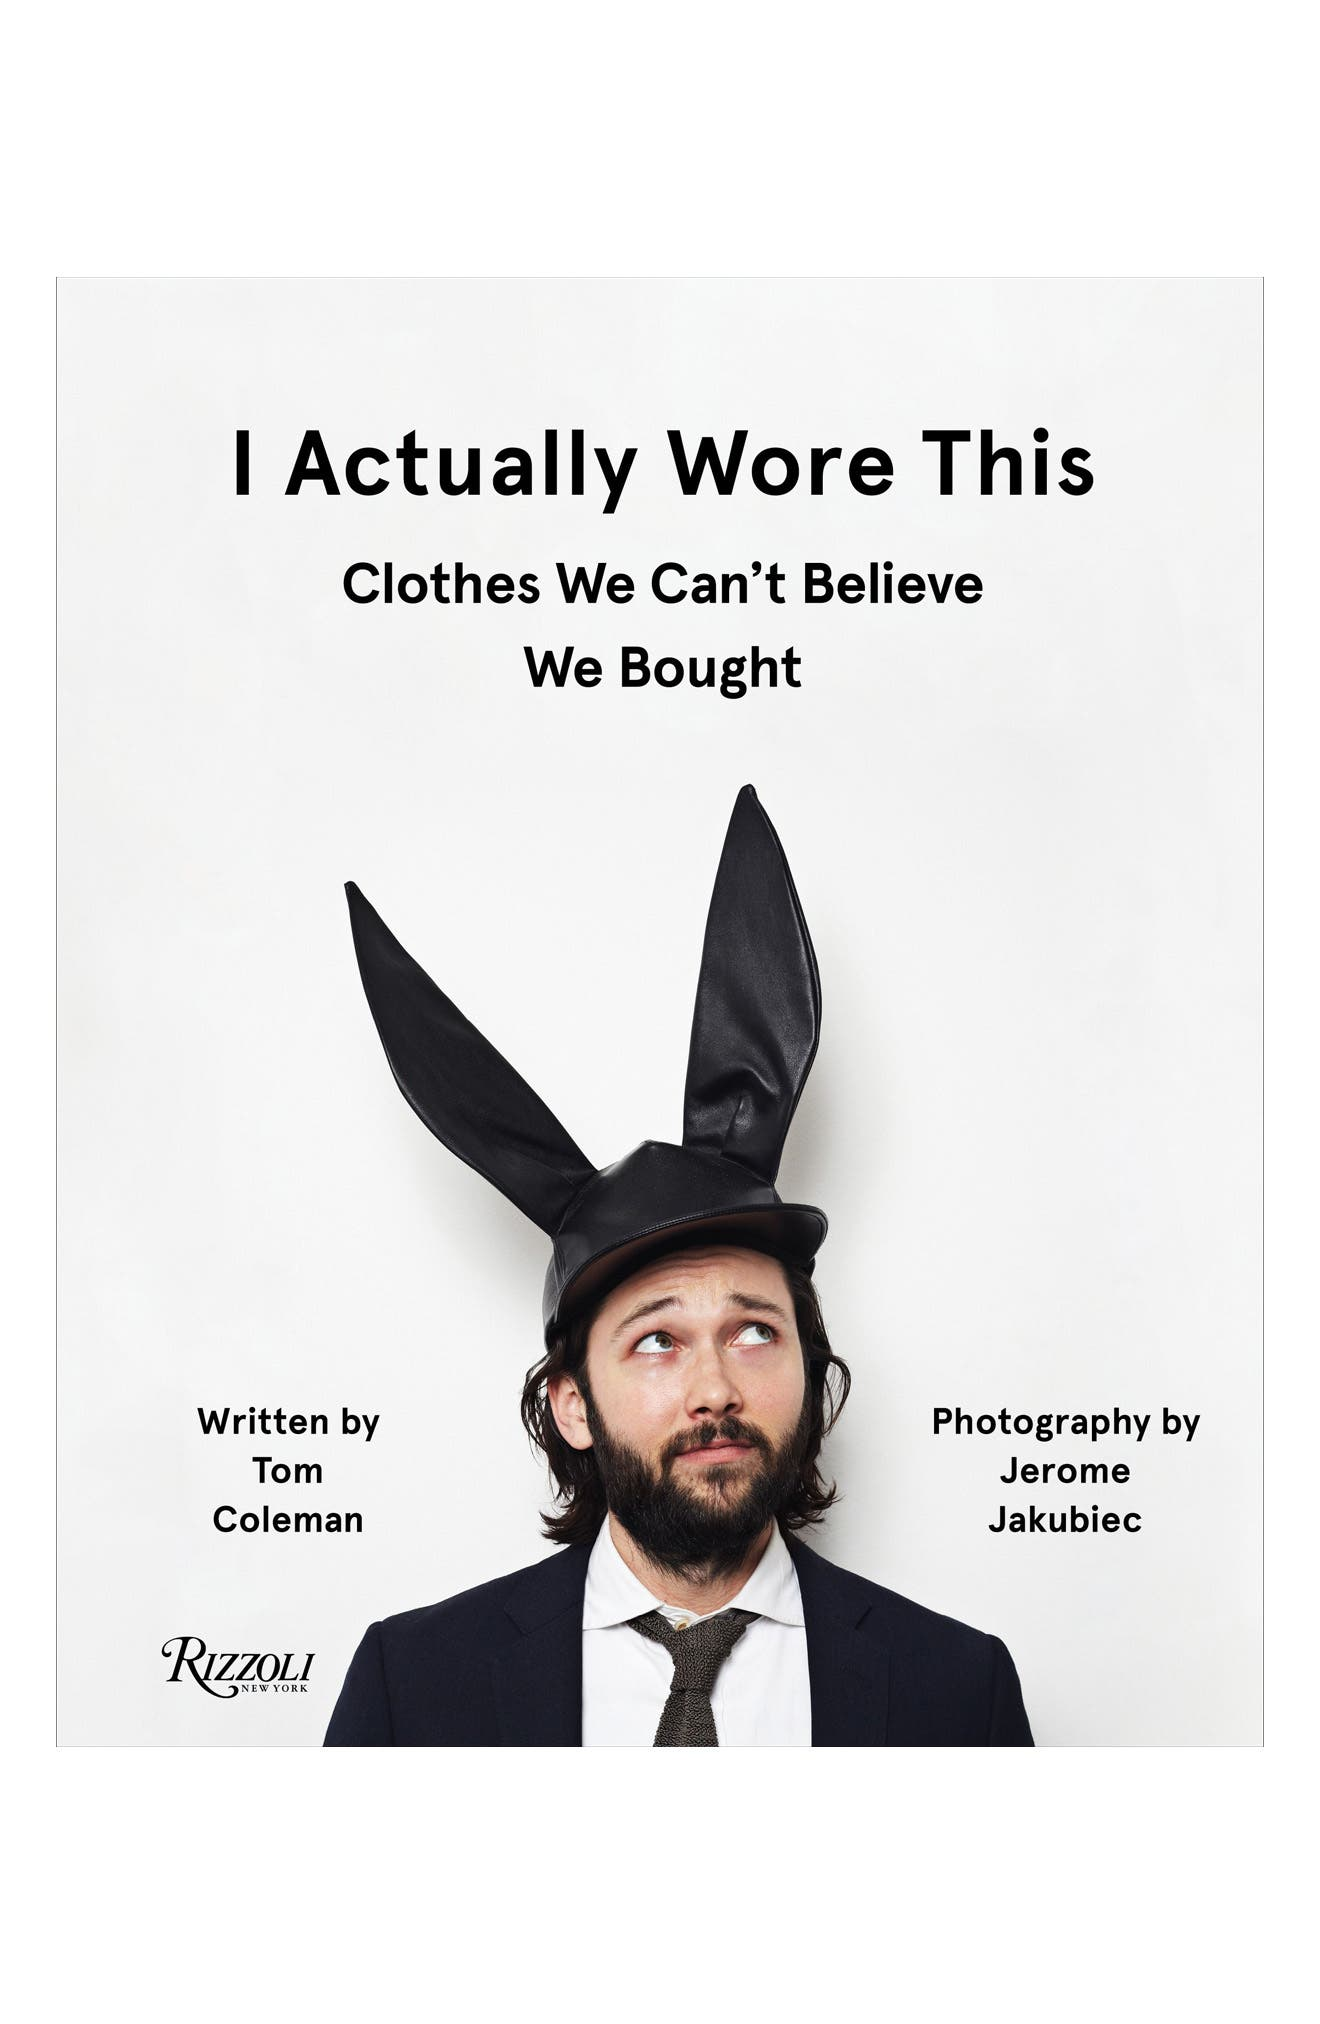 Main Image - I Actually Wore This: Clothes We Can't Believe We Bought Book